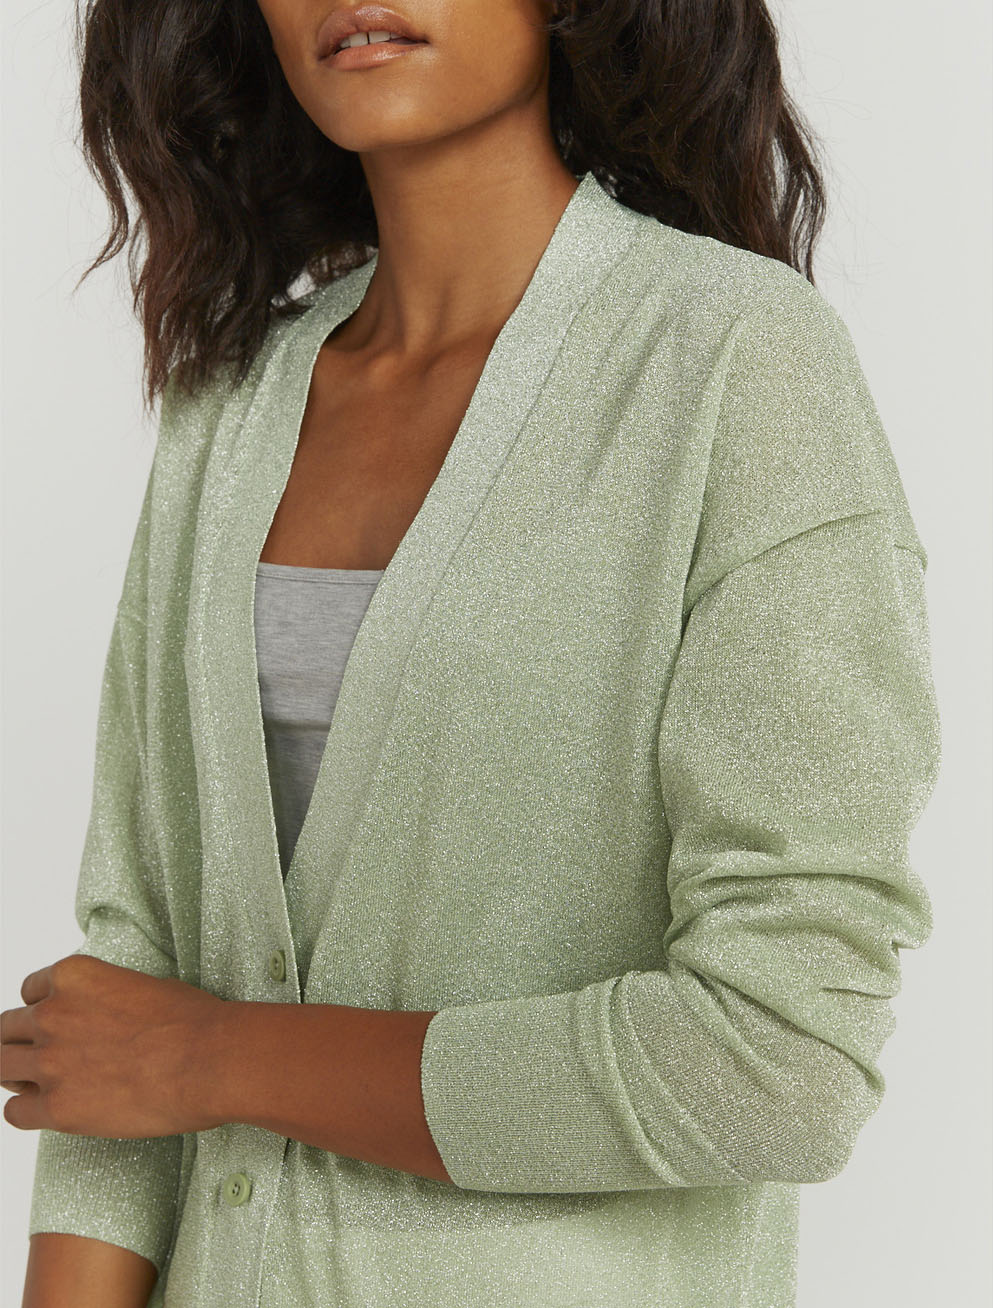 Lurex knit cardigan